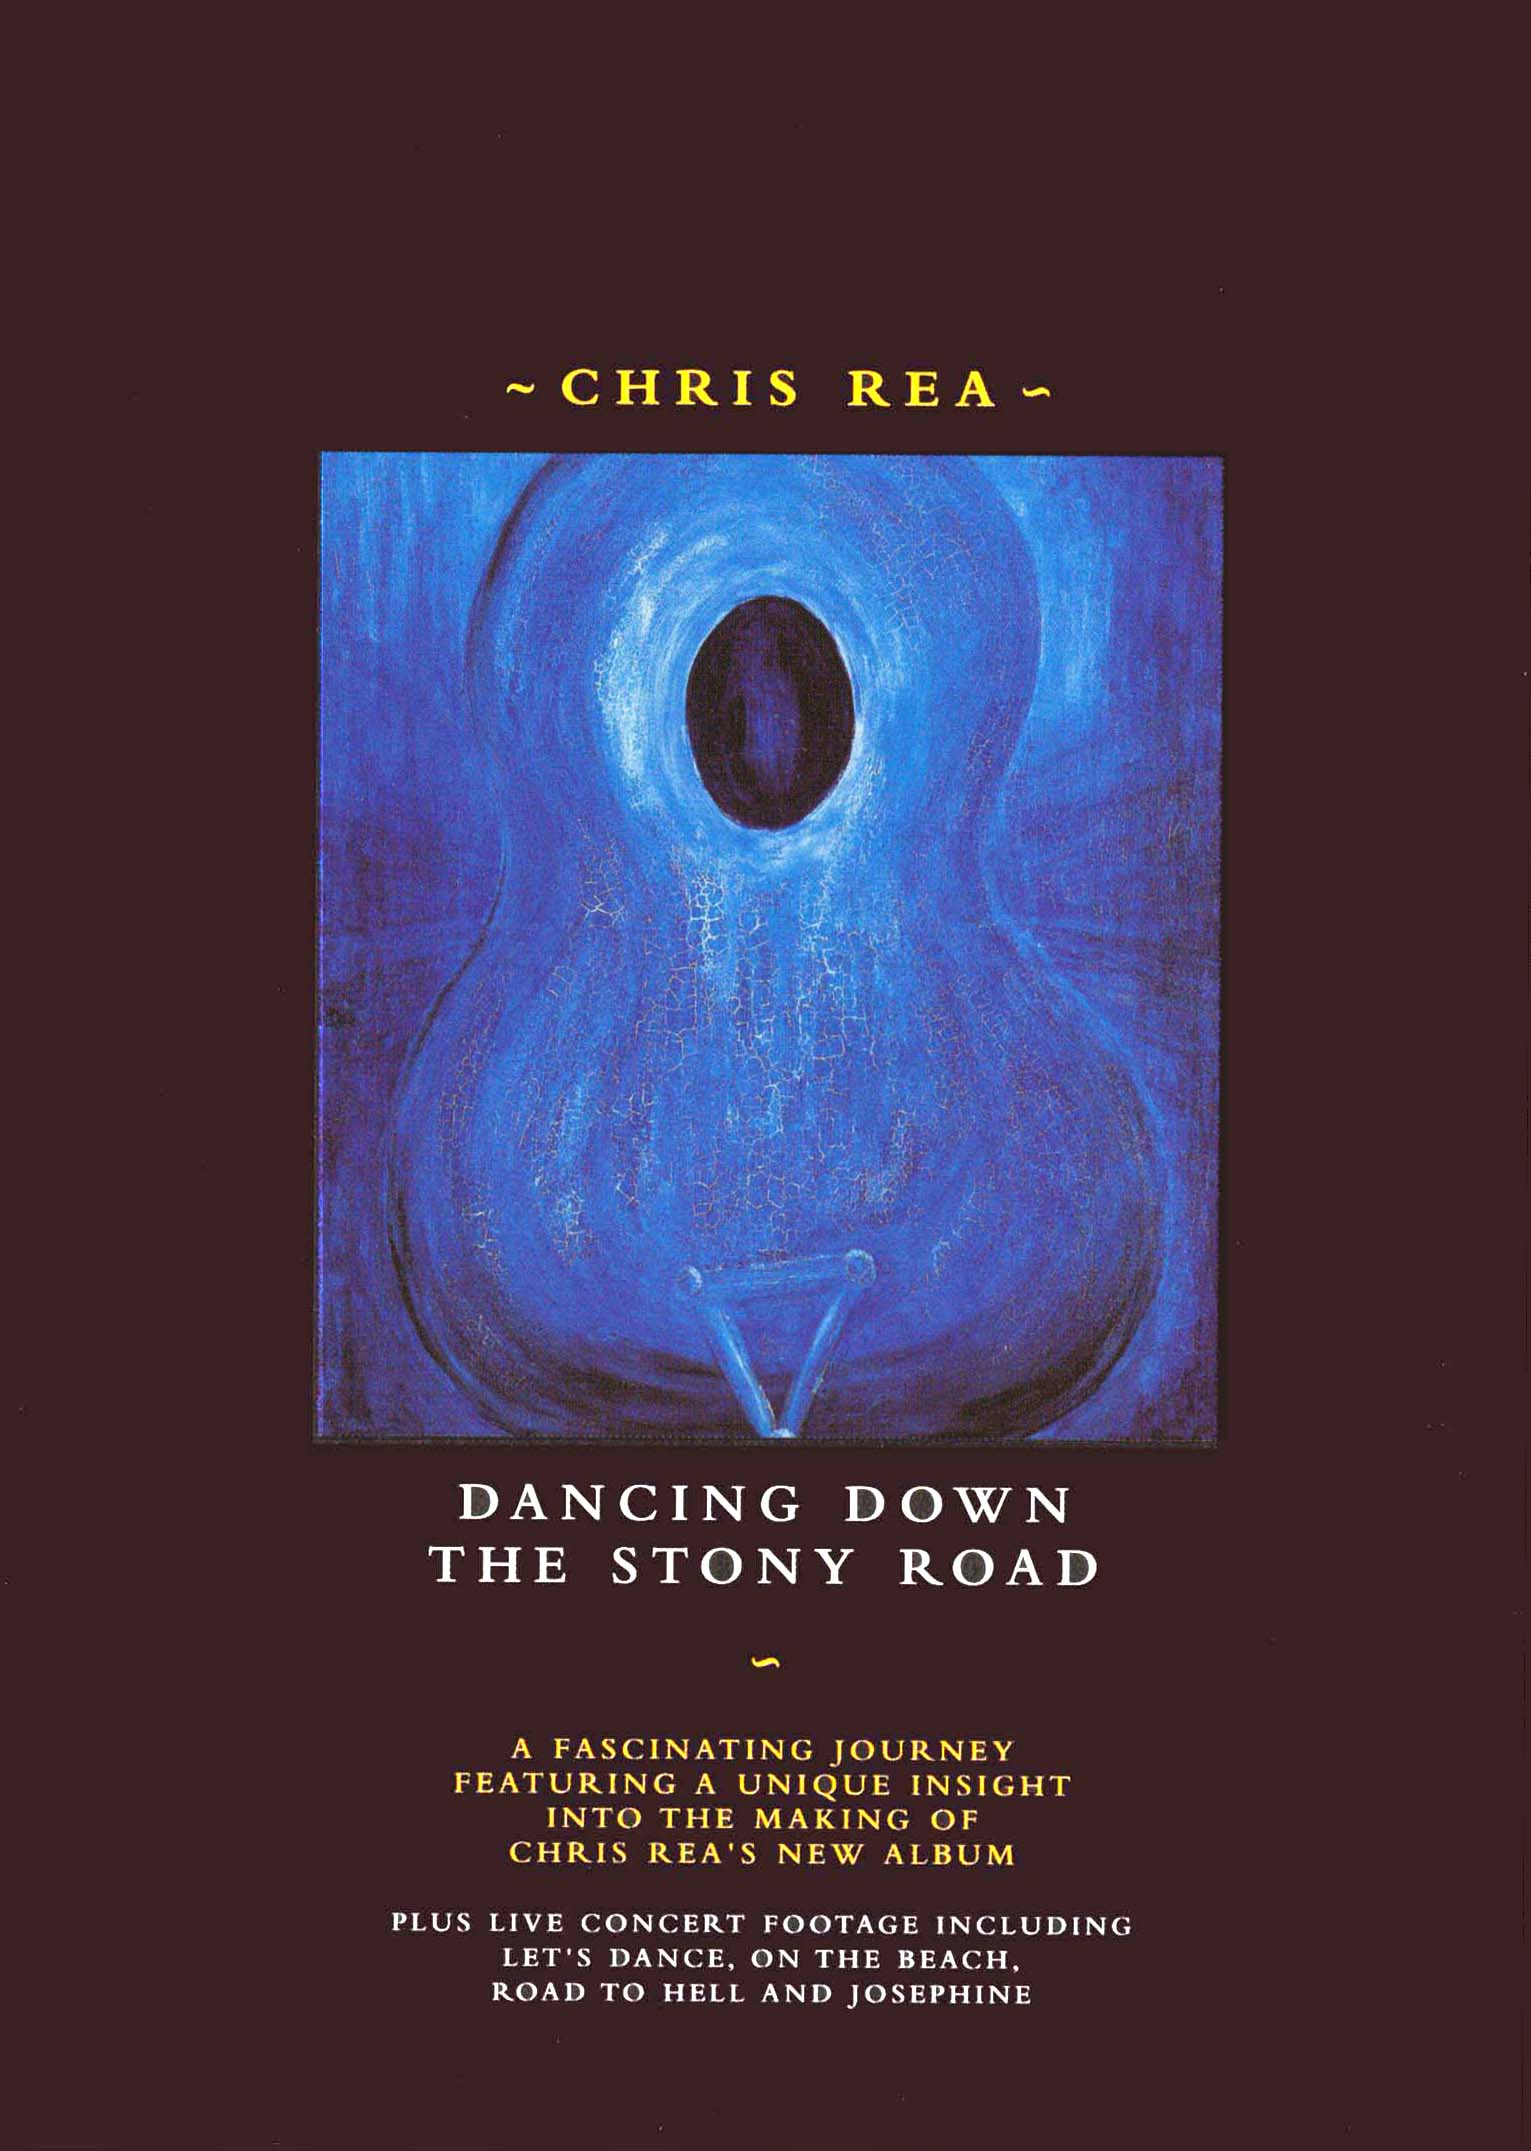 Chris Rea: Dancing Down the Stony Road